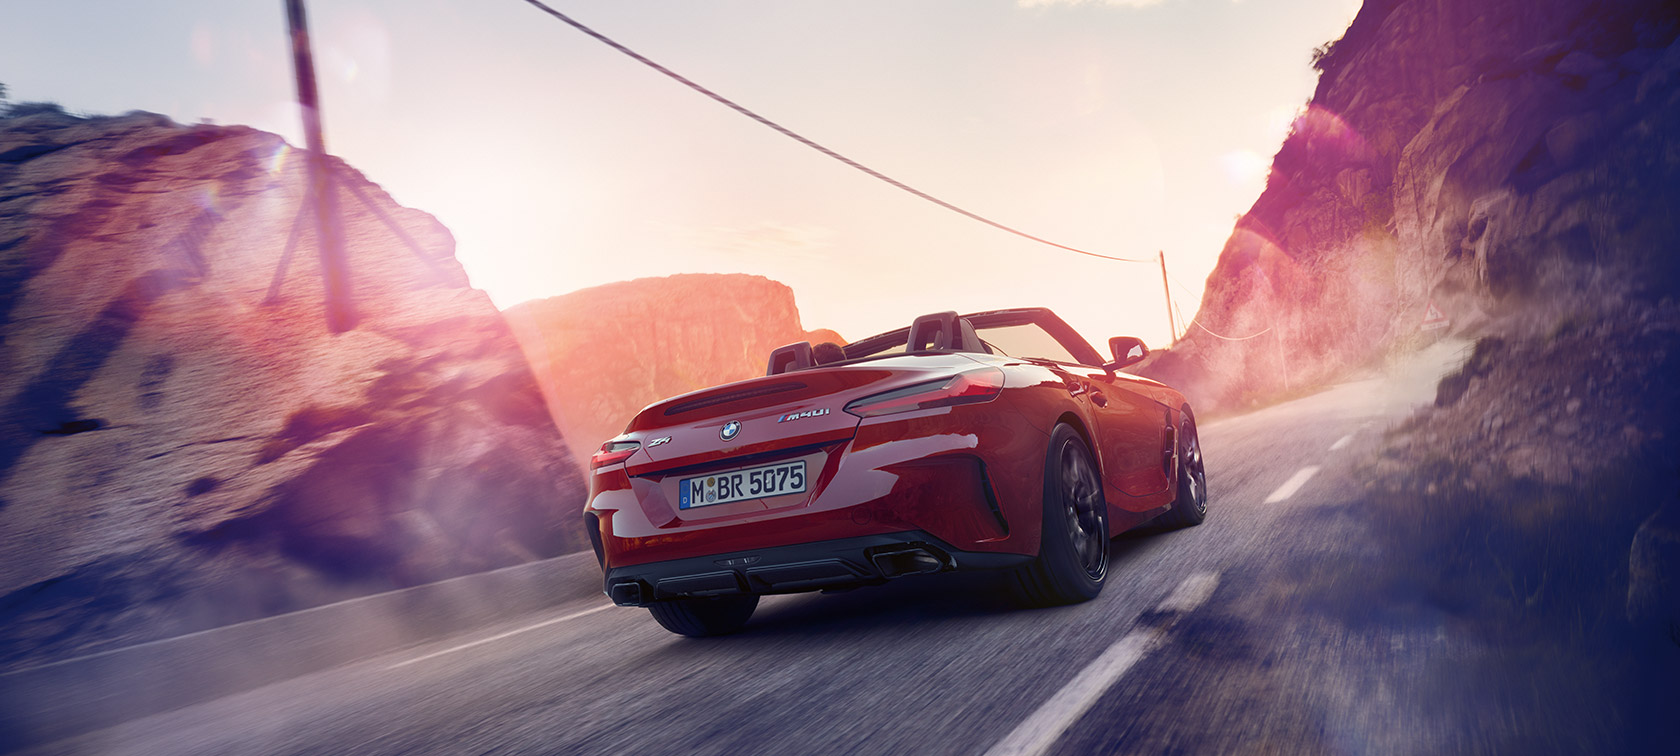 BMW Z4 Roadster driving through mountains